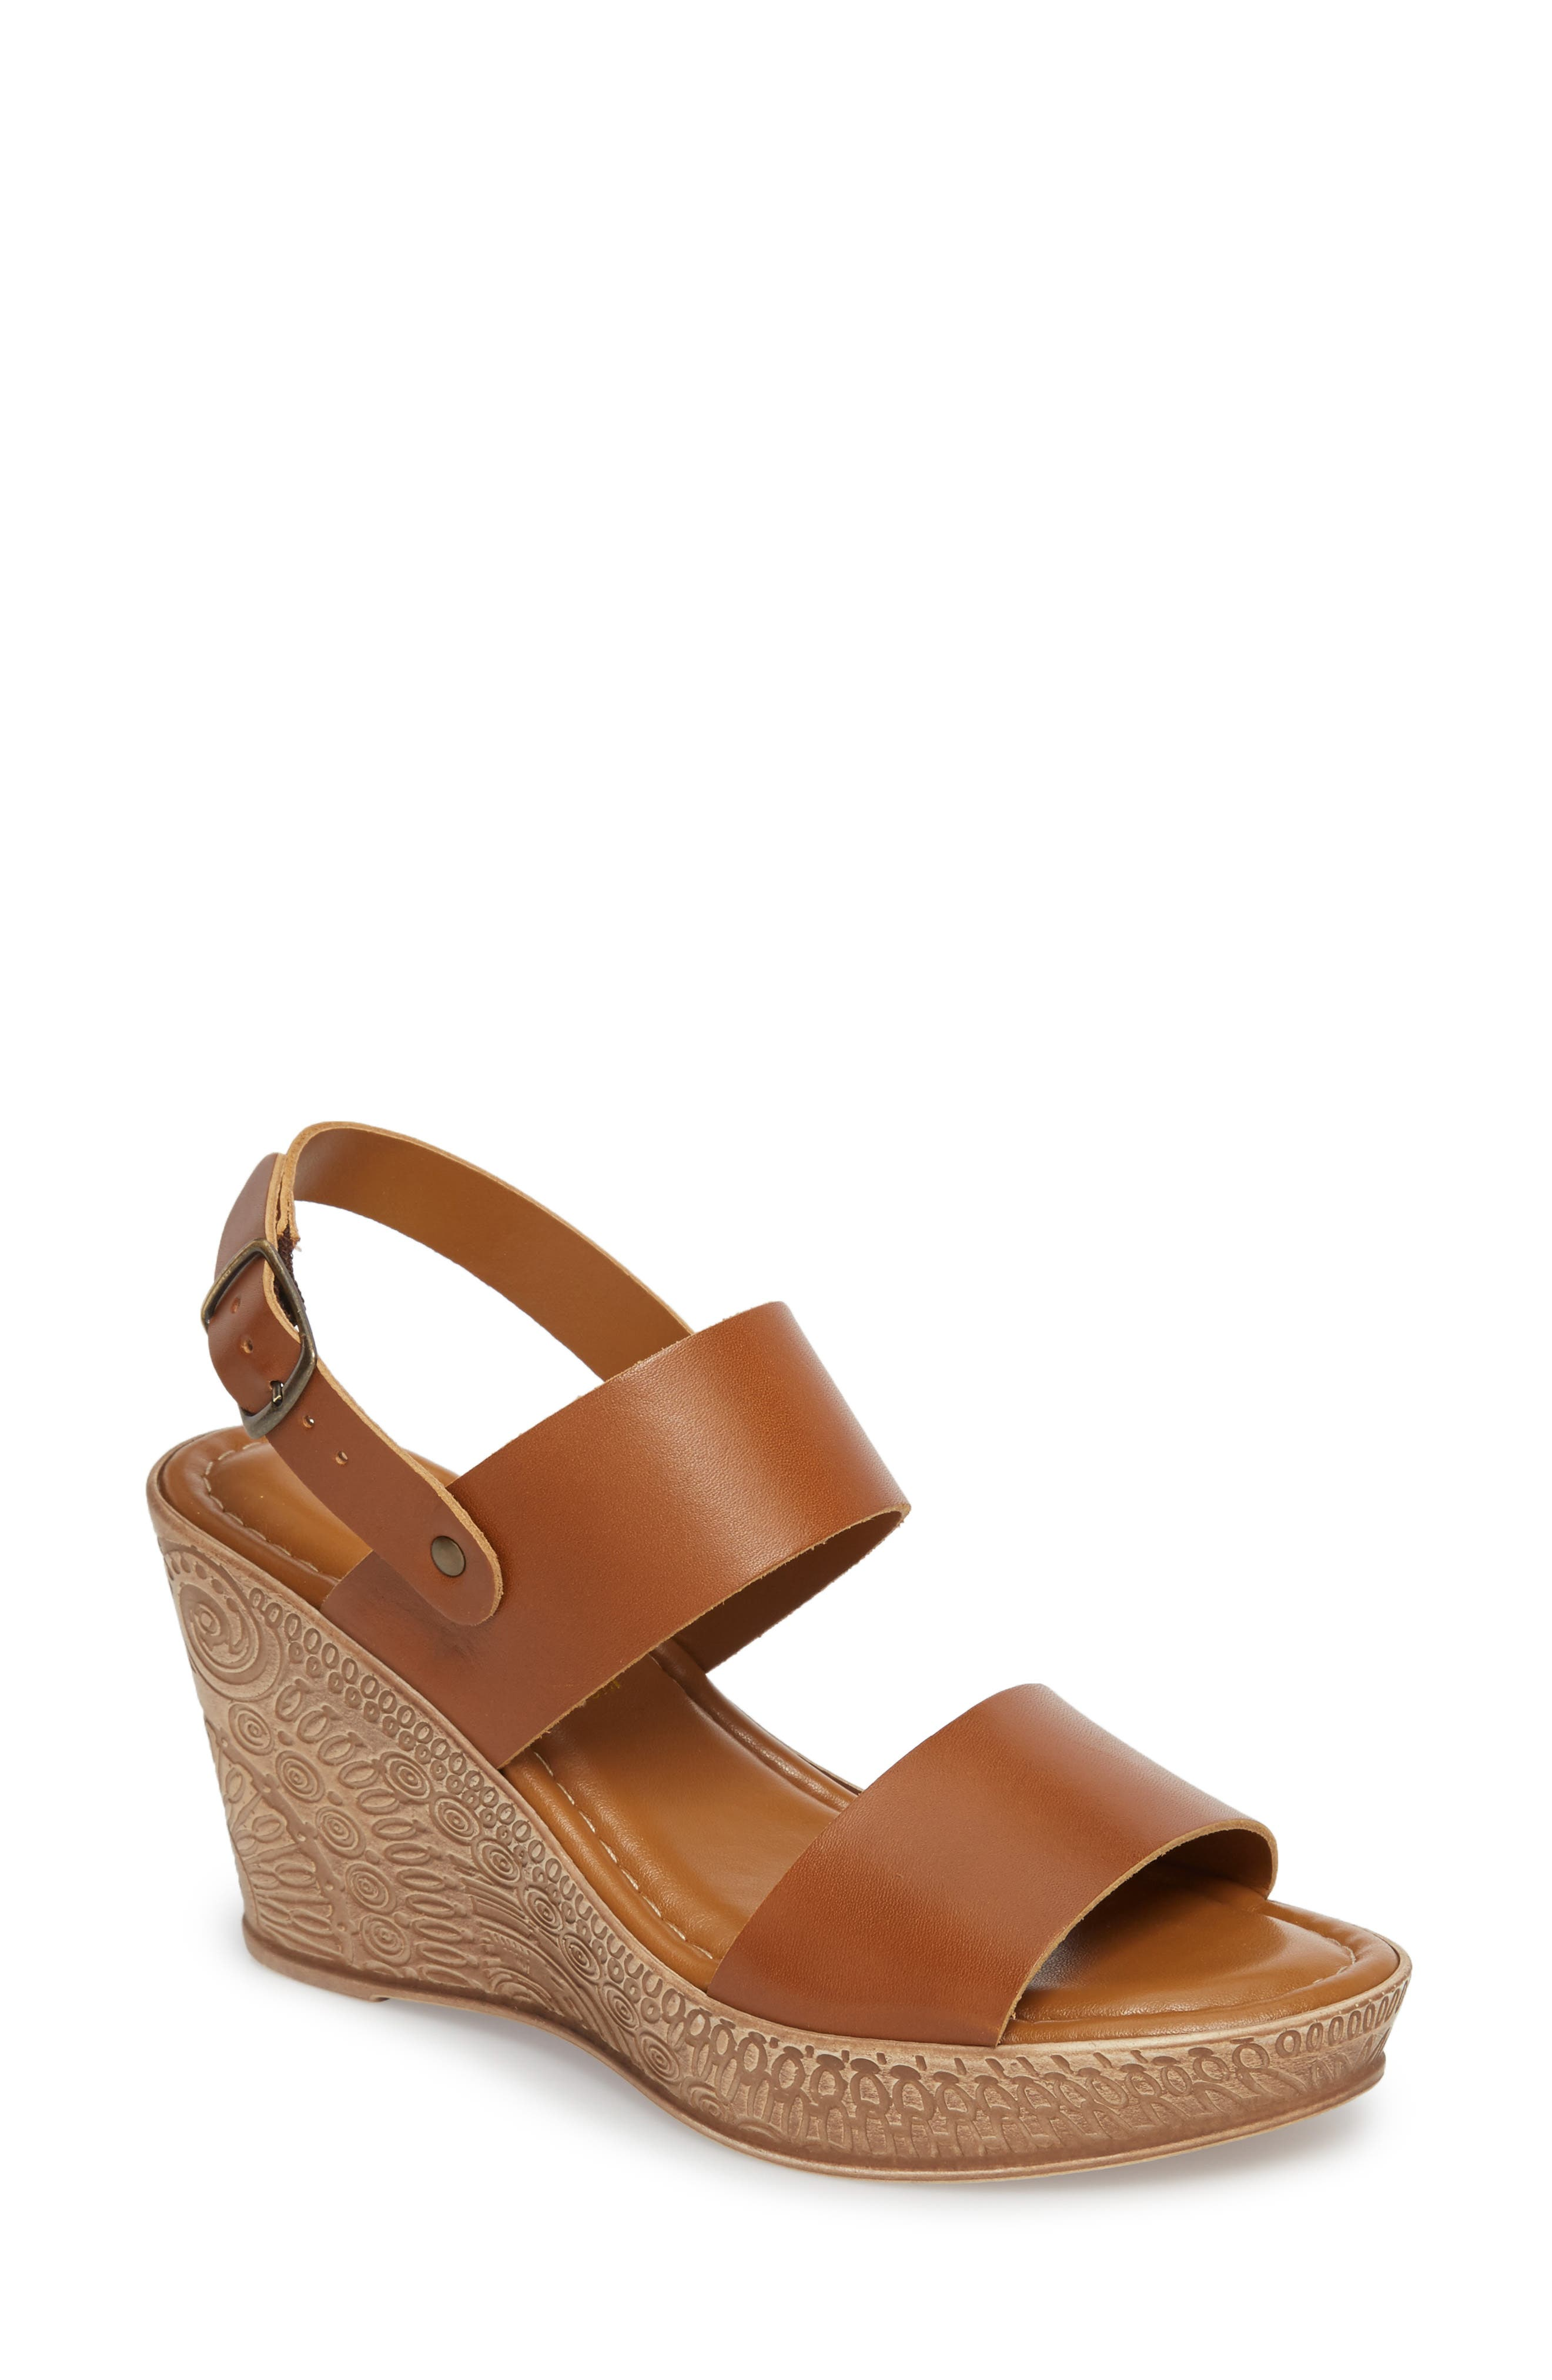 Cor Wedge Sandal,                             Main thumbnail 1, color,                             WHISKEY LEATHER